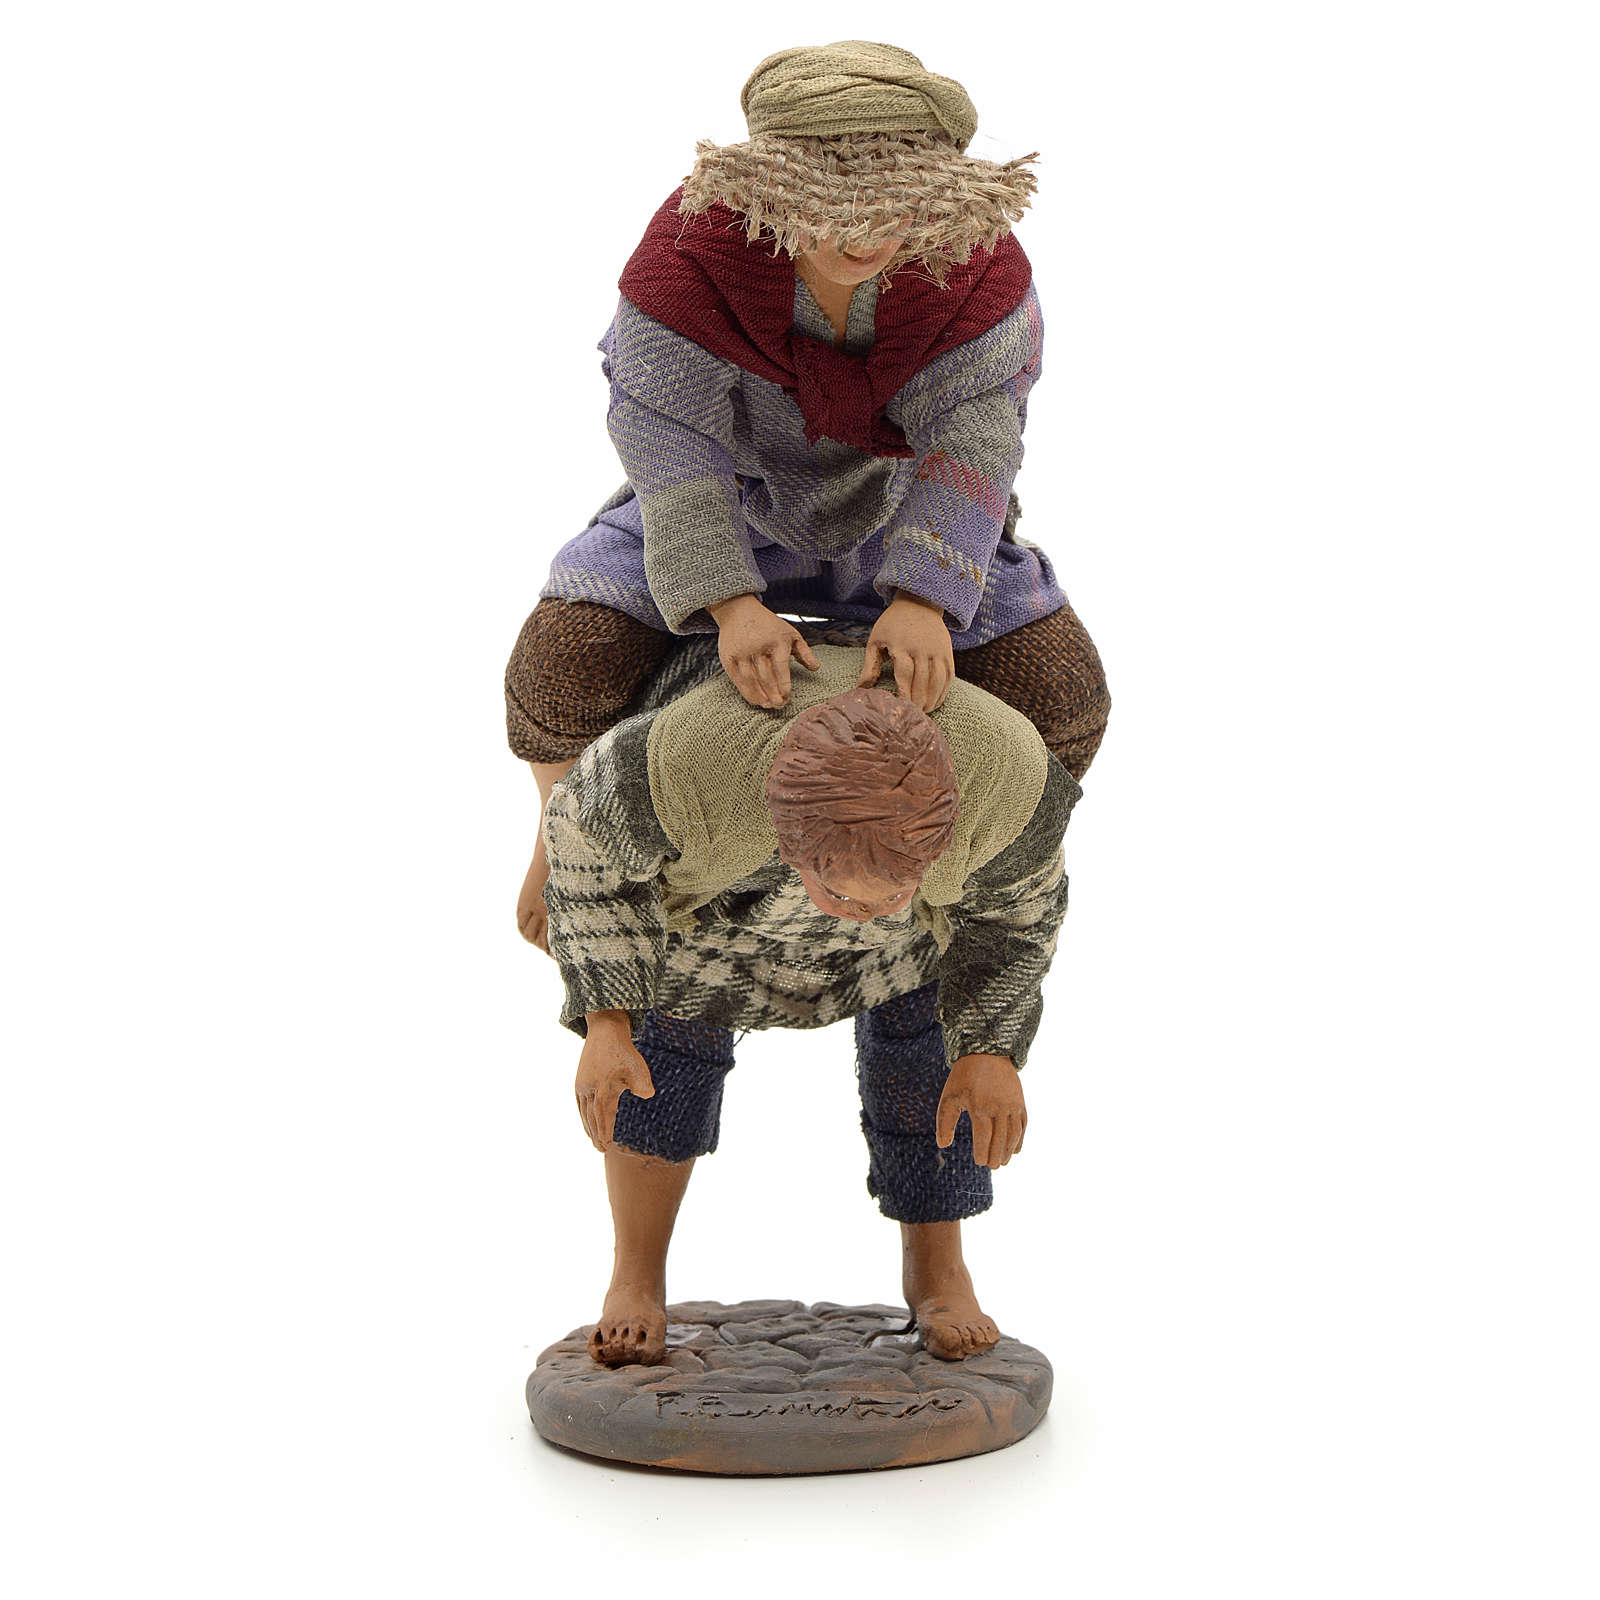 Neapolitan Nativity figurine, kids playing, 24 cm 4